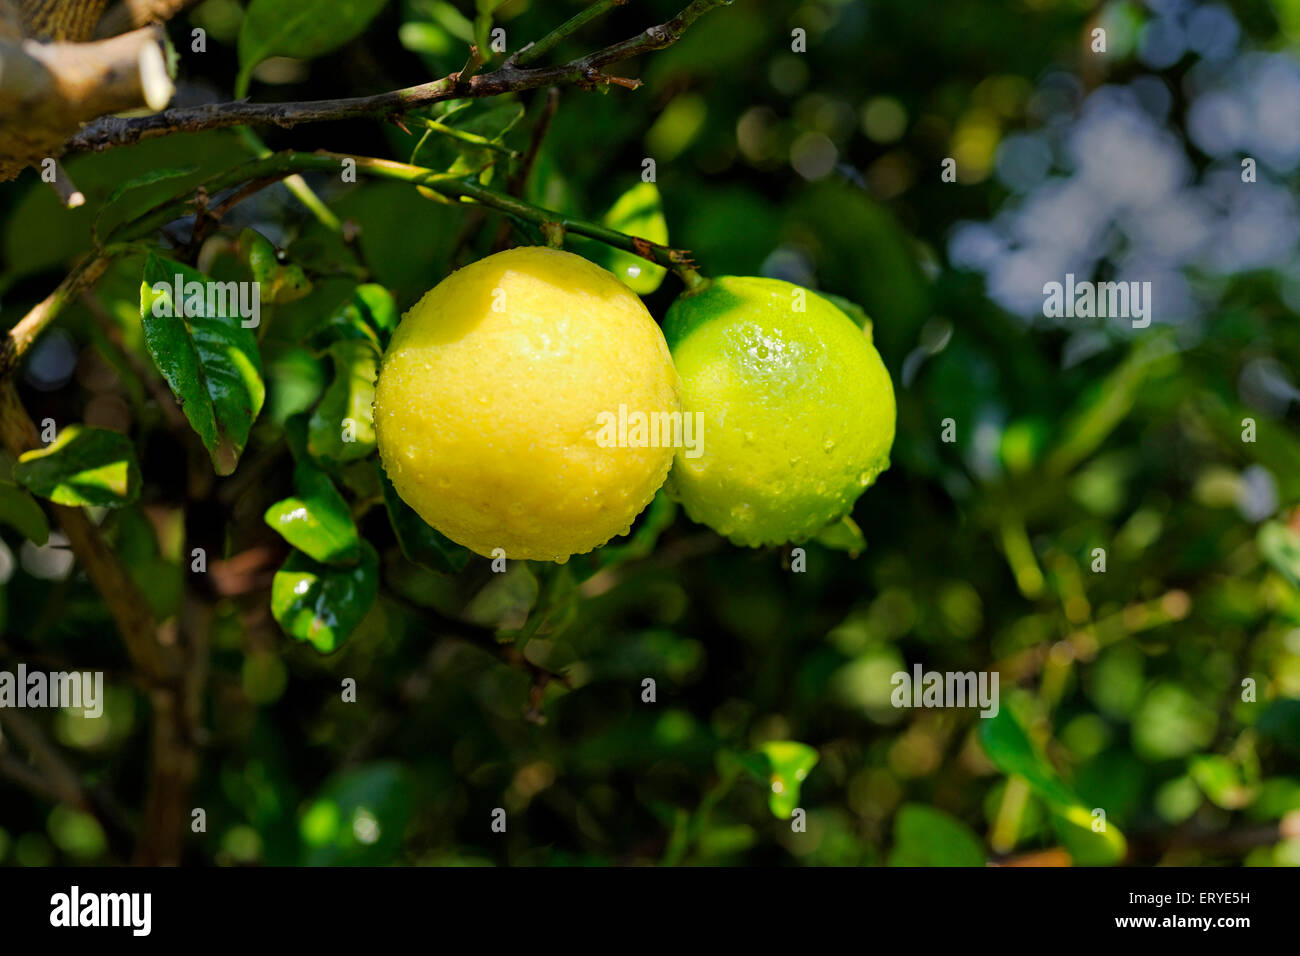 Lemon Lime sauce of vitamin C ; citrus Juice and zest tang ; India - Stock Image